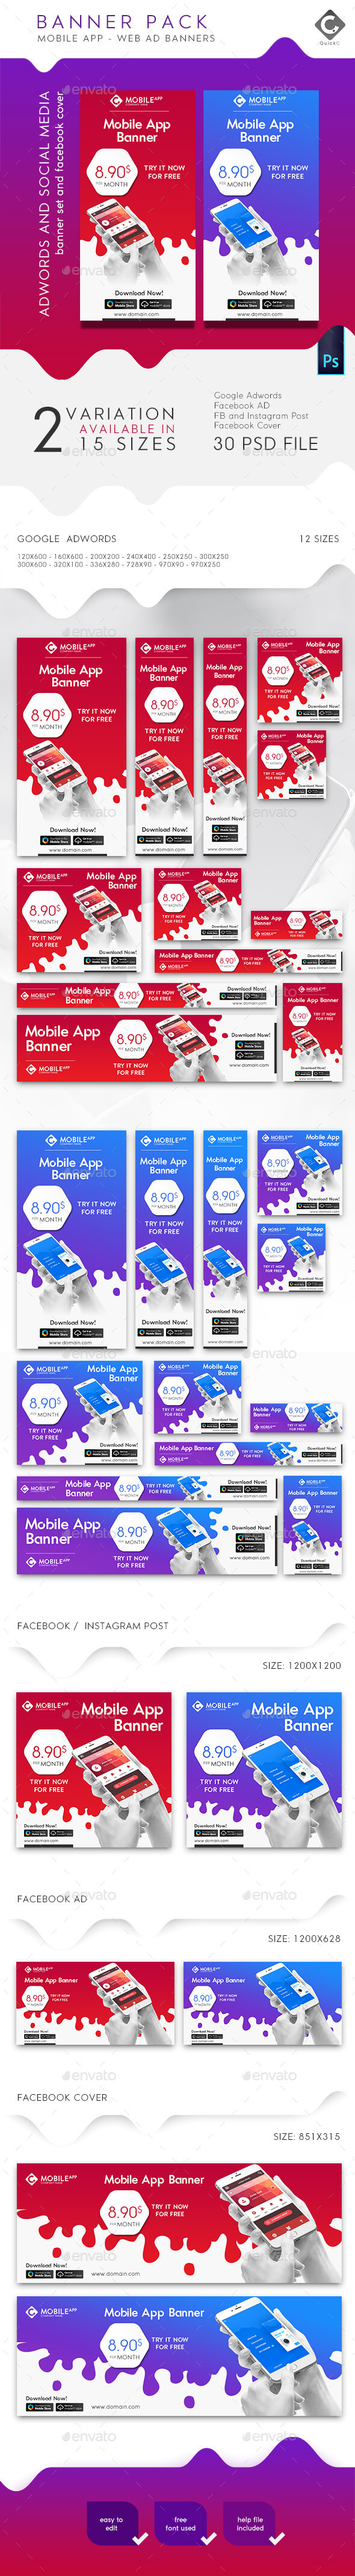 Mobile App Banner Pack - Banners & Ads Web Elements